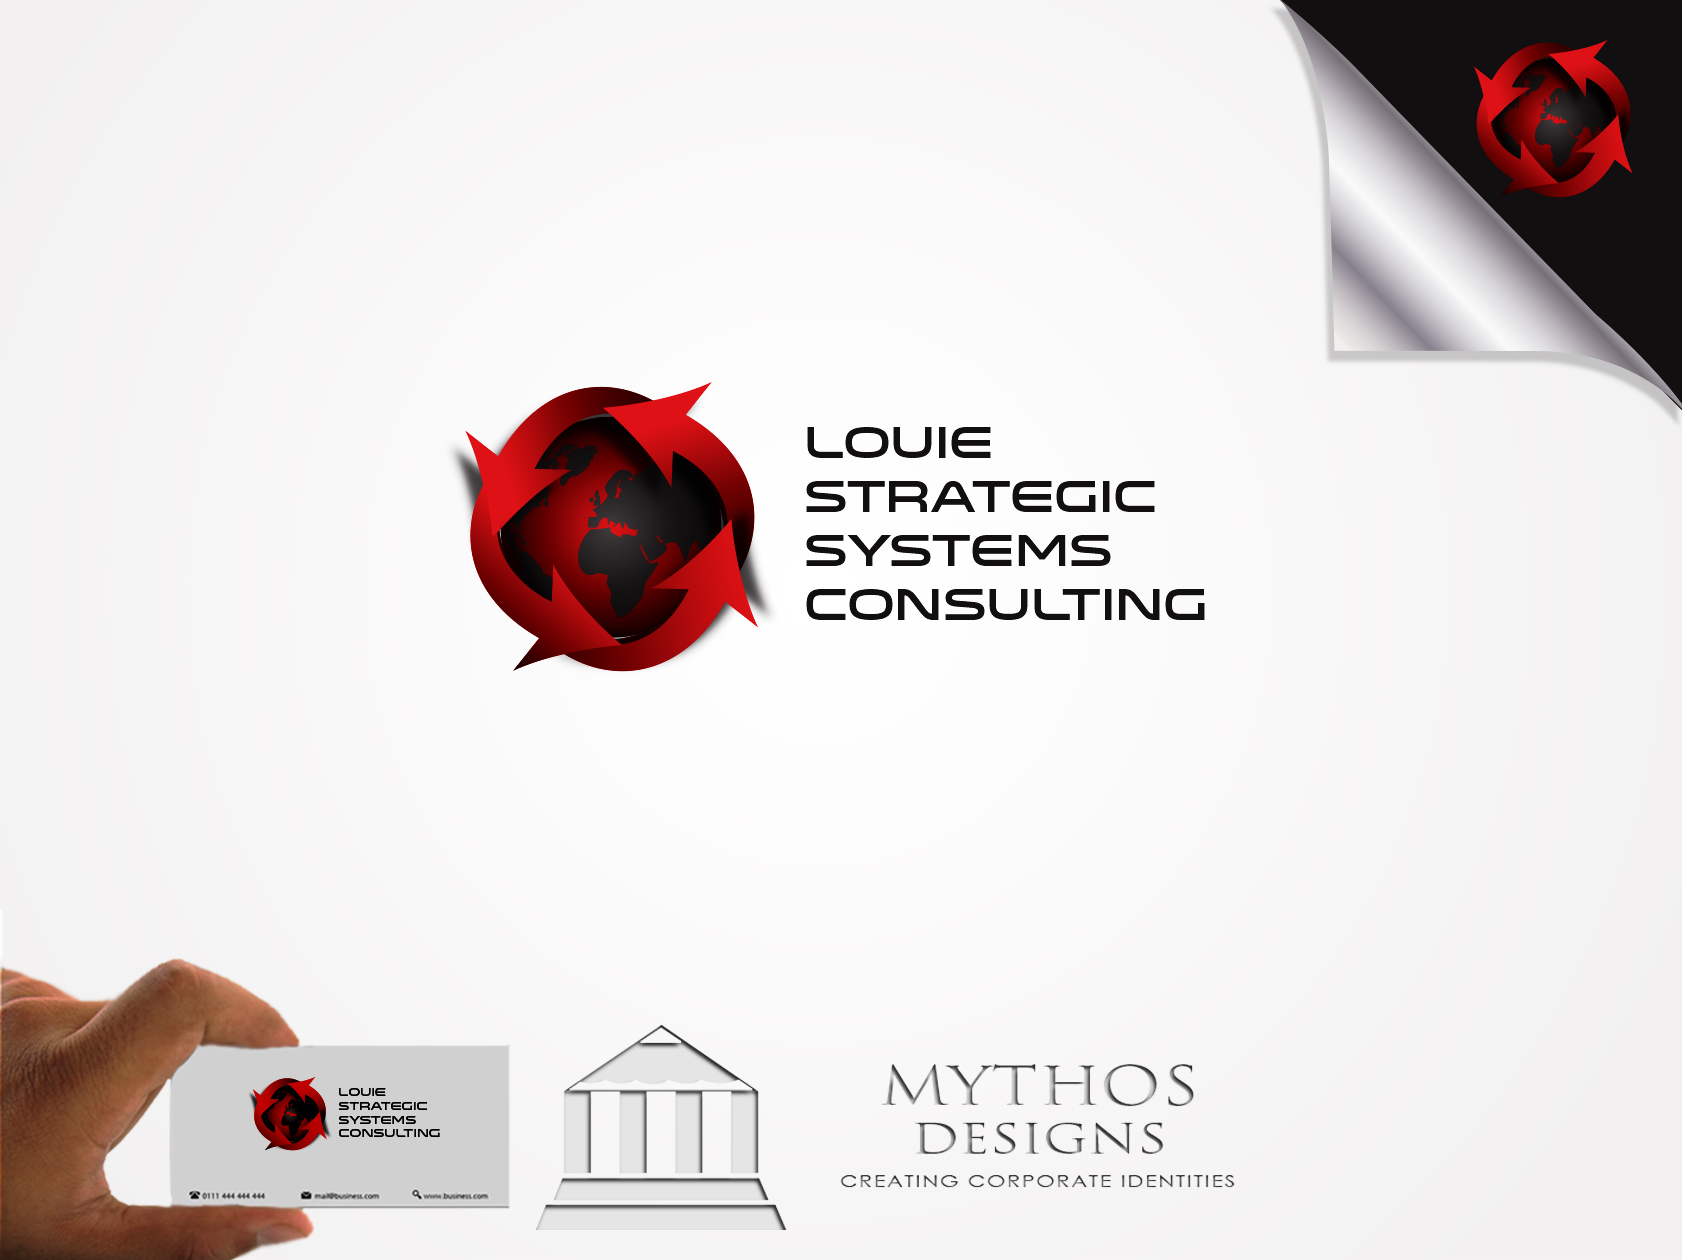 Logo Design by Mythos Designs - Entry No. 169 in the Logo Design Contest Artistic Logo Design for Louie Strategic Systems Consulting.